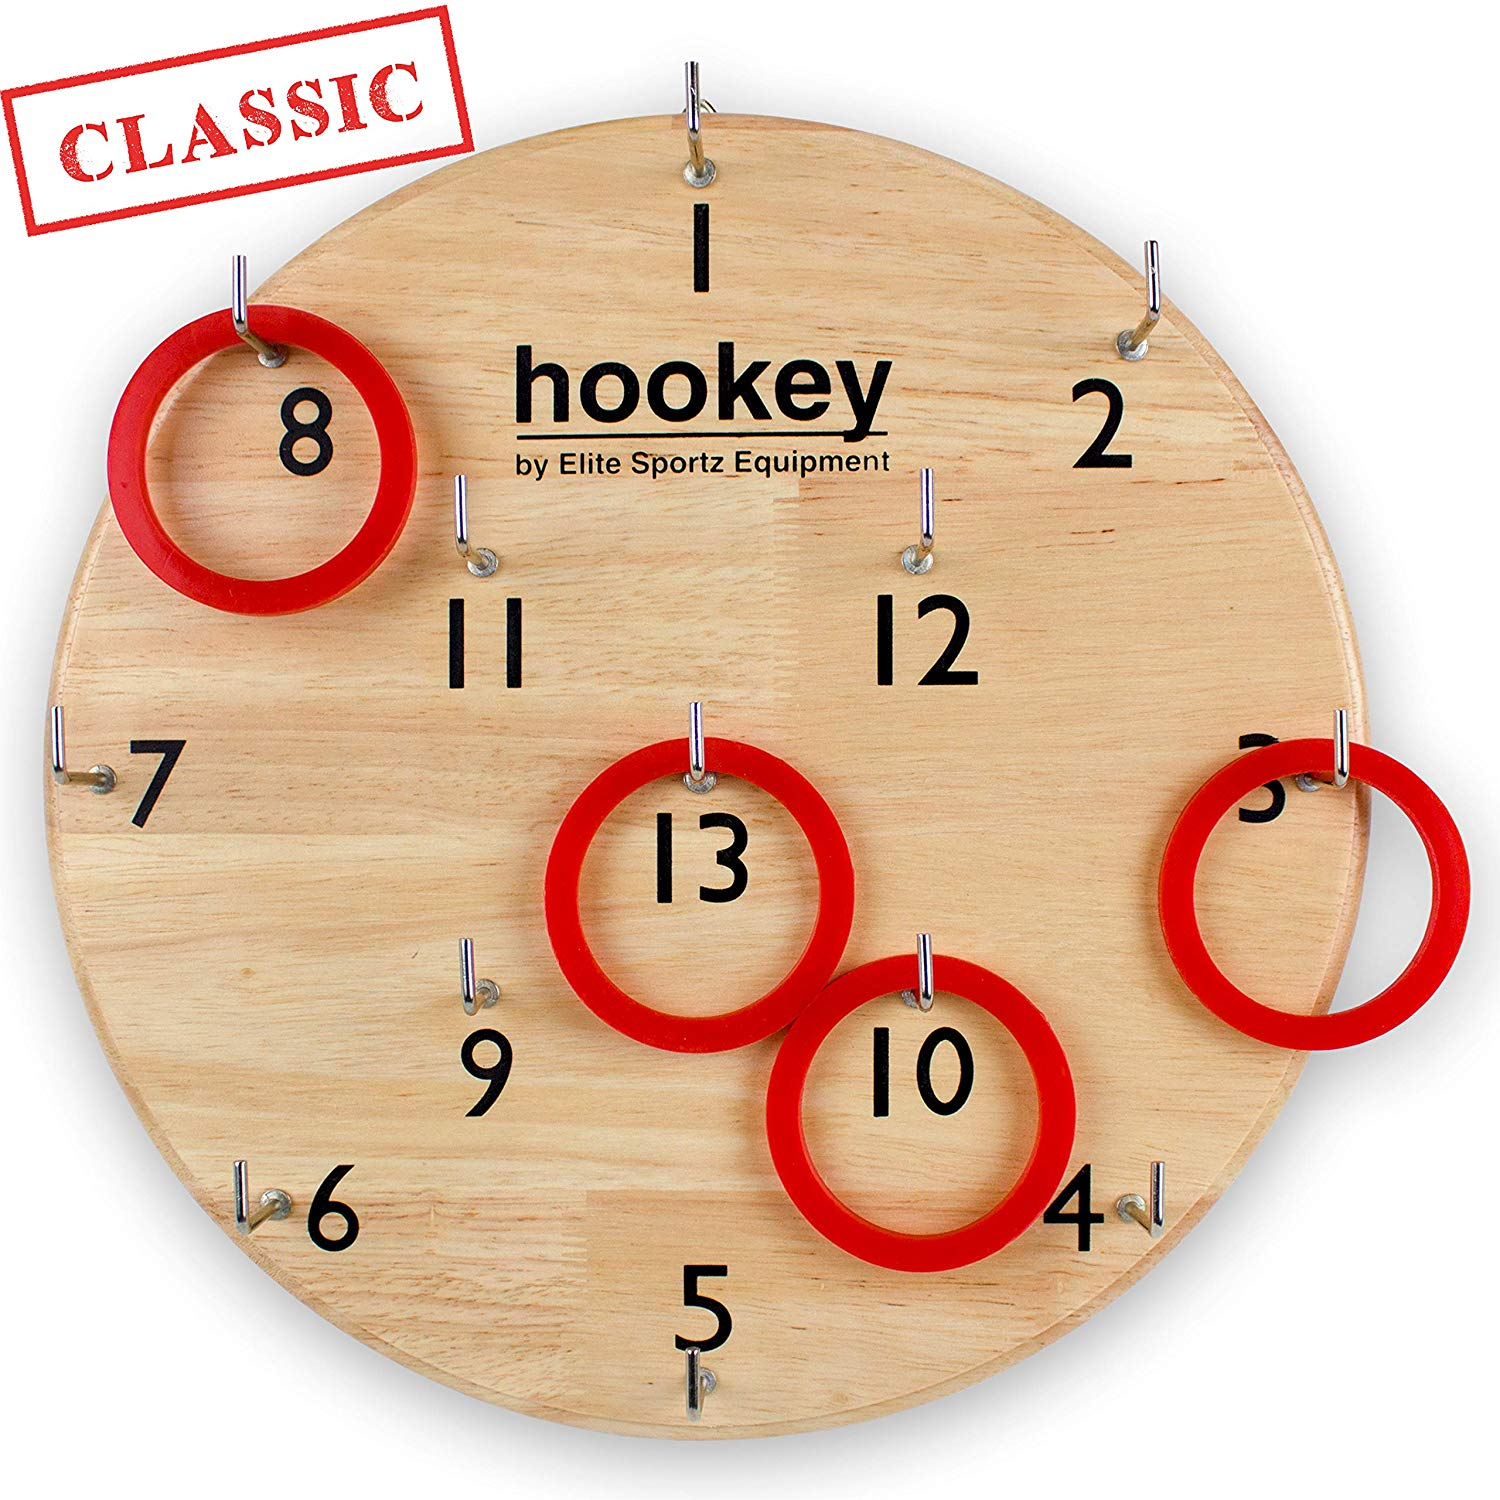 Hookey Ring Toss Game - oddgifts.com